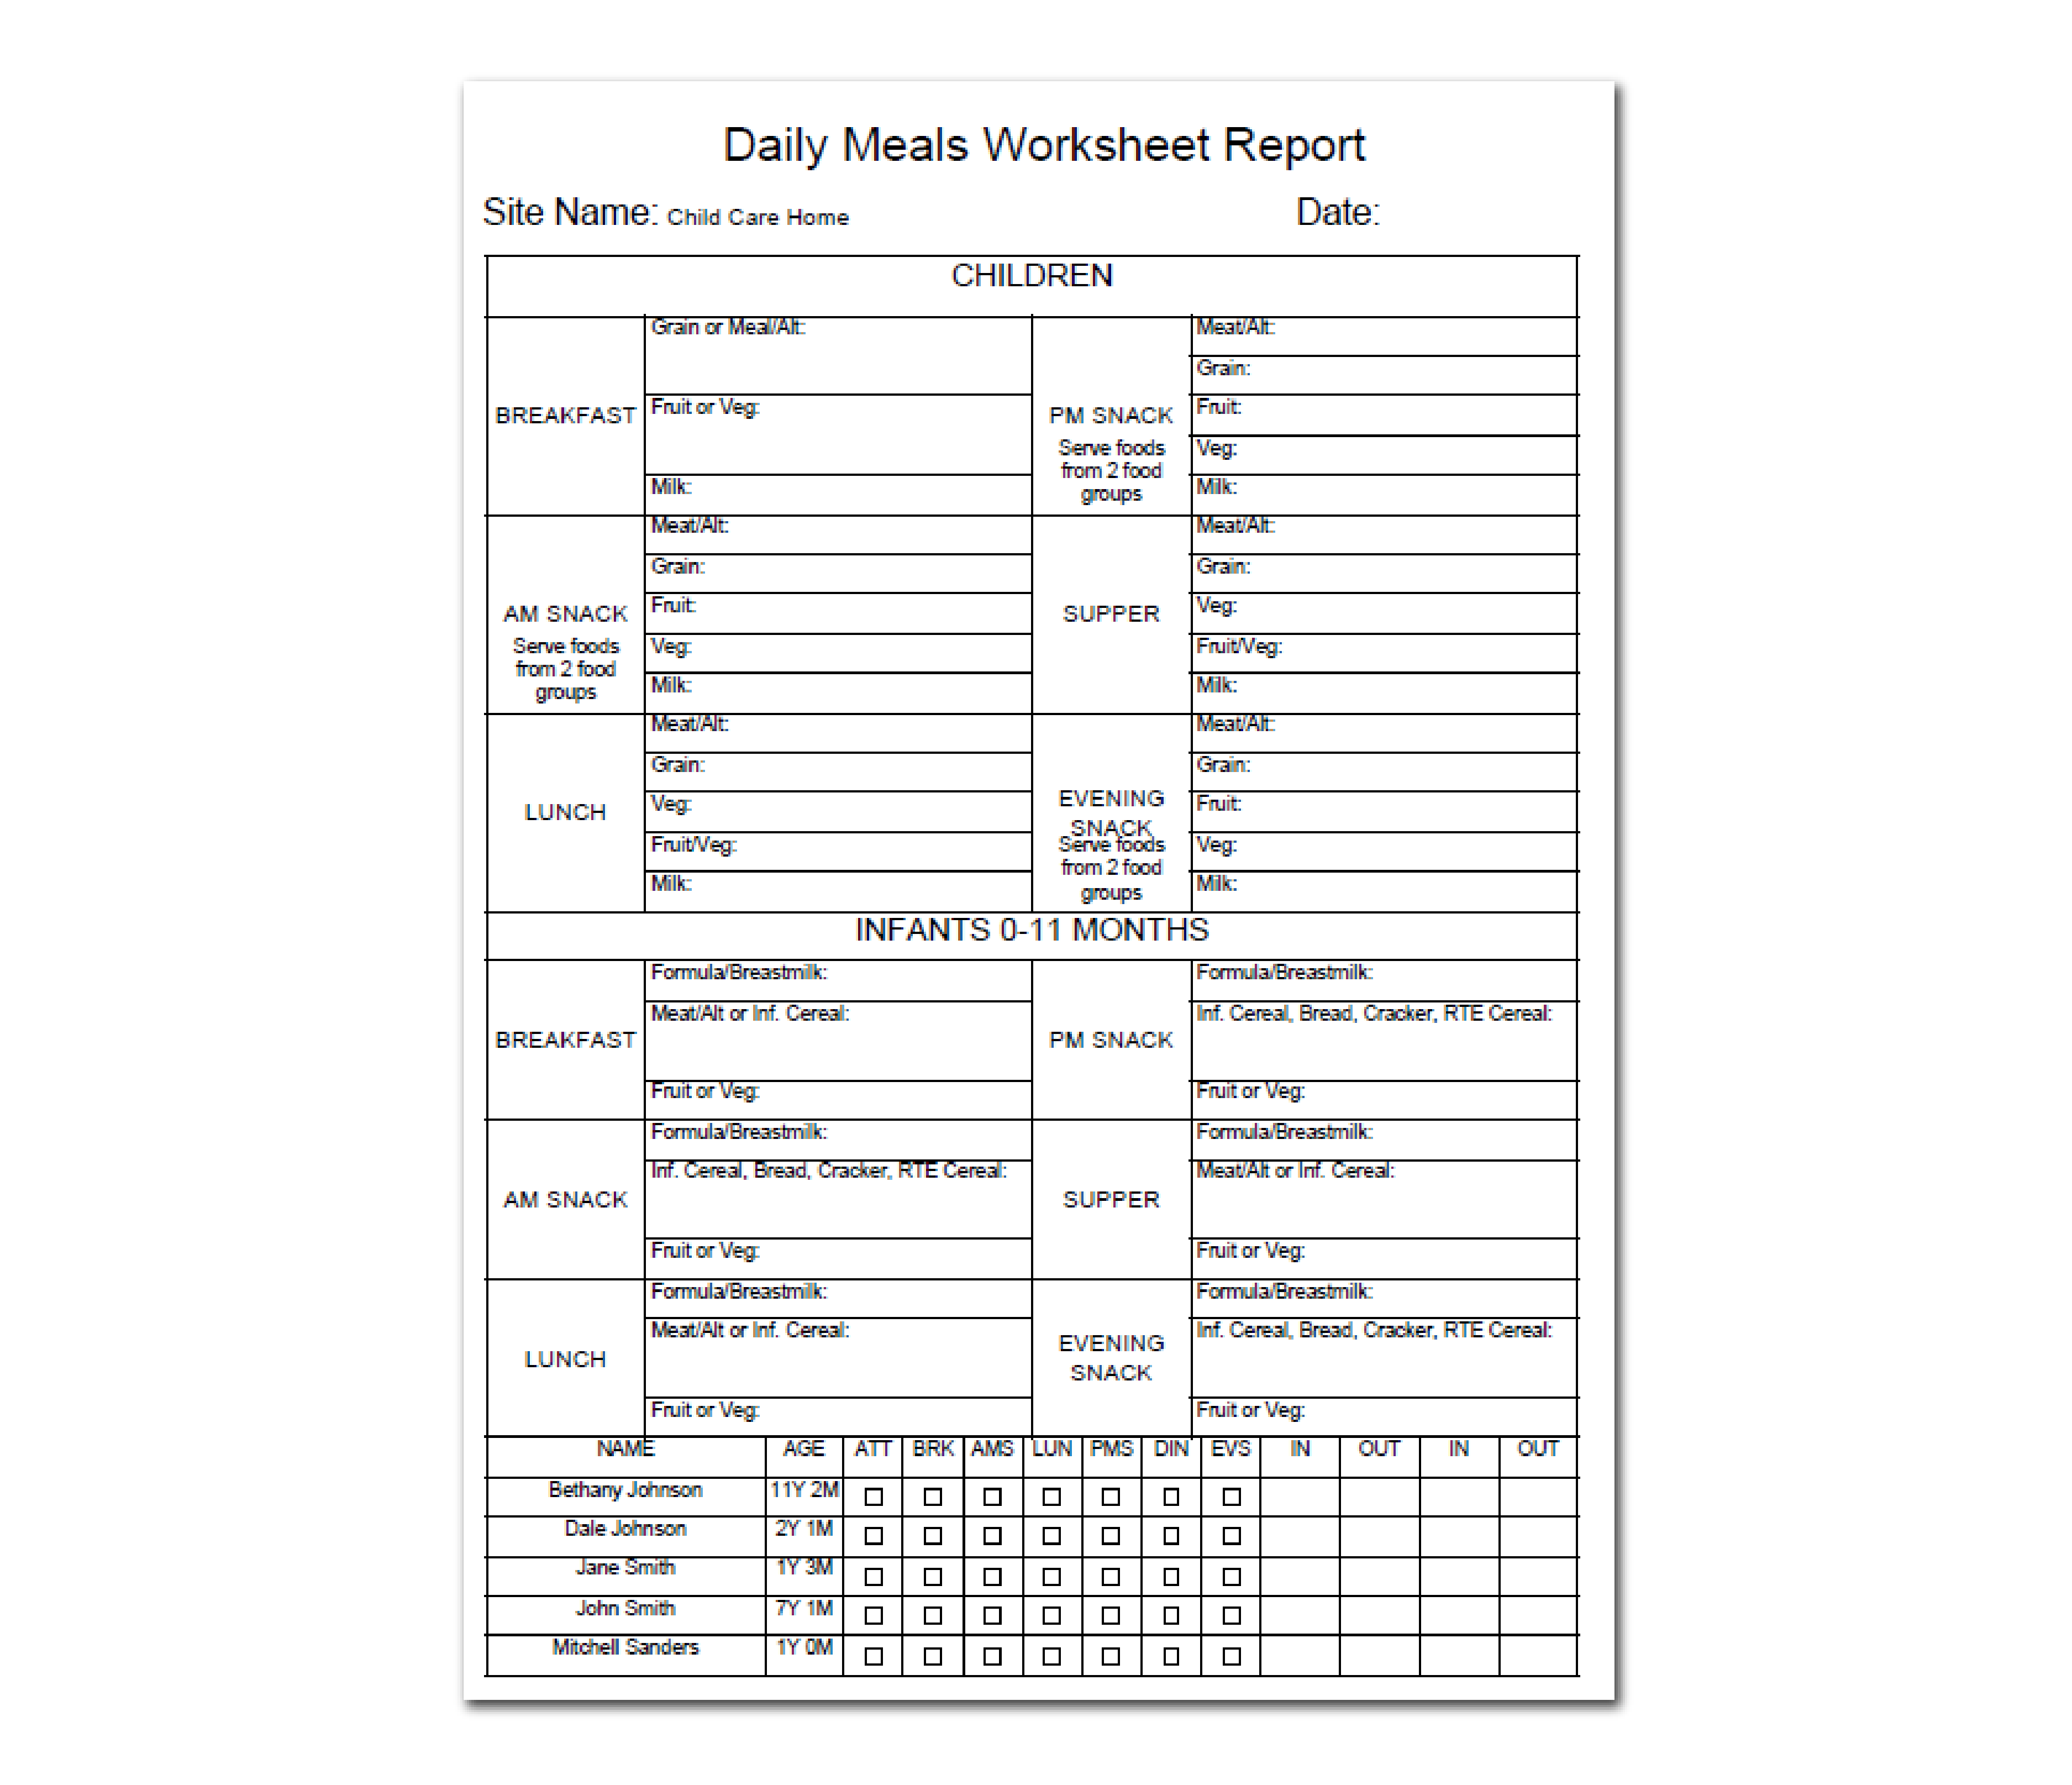 Software Update 3.0.3 Daily Menu, Attendance and Meal Count Sheet